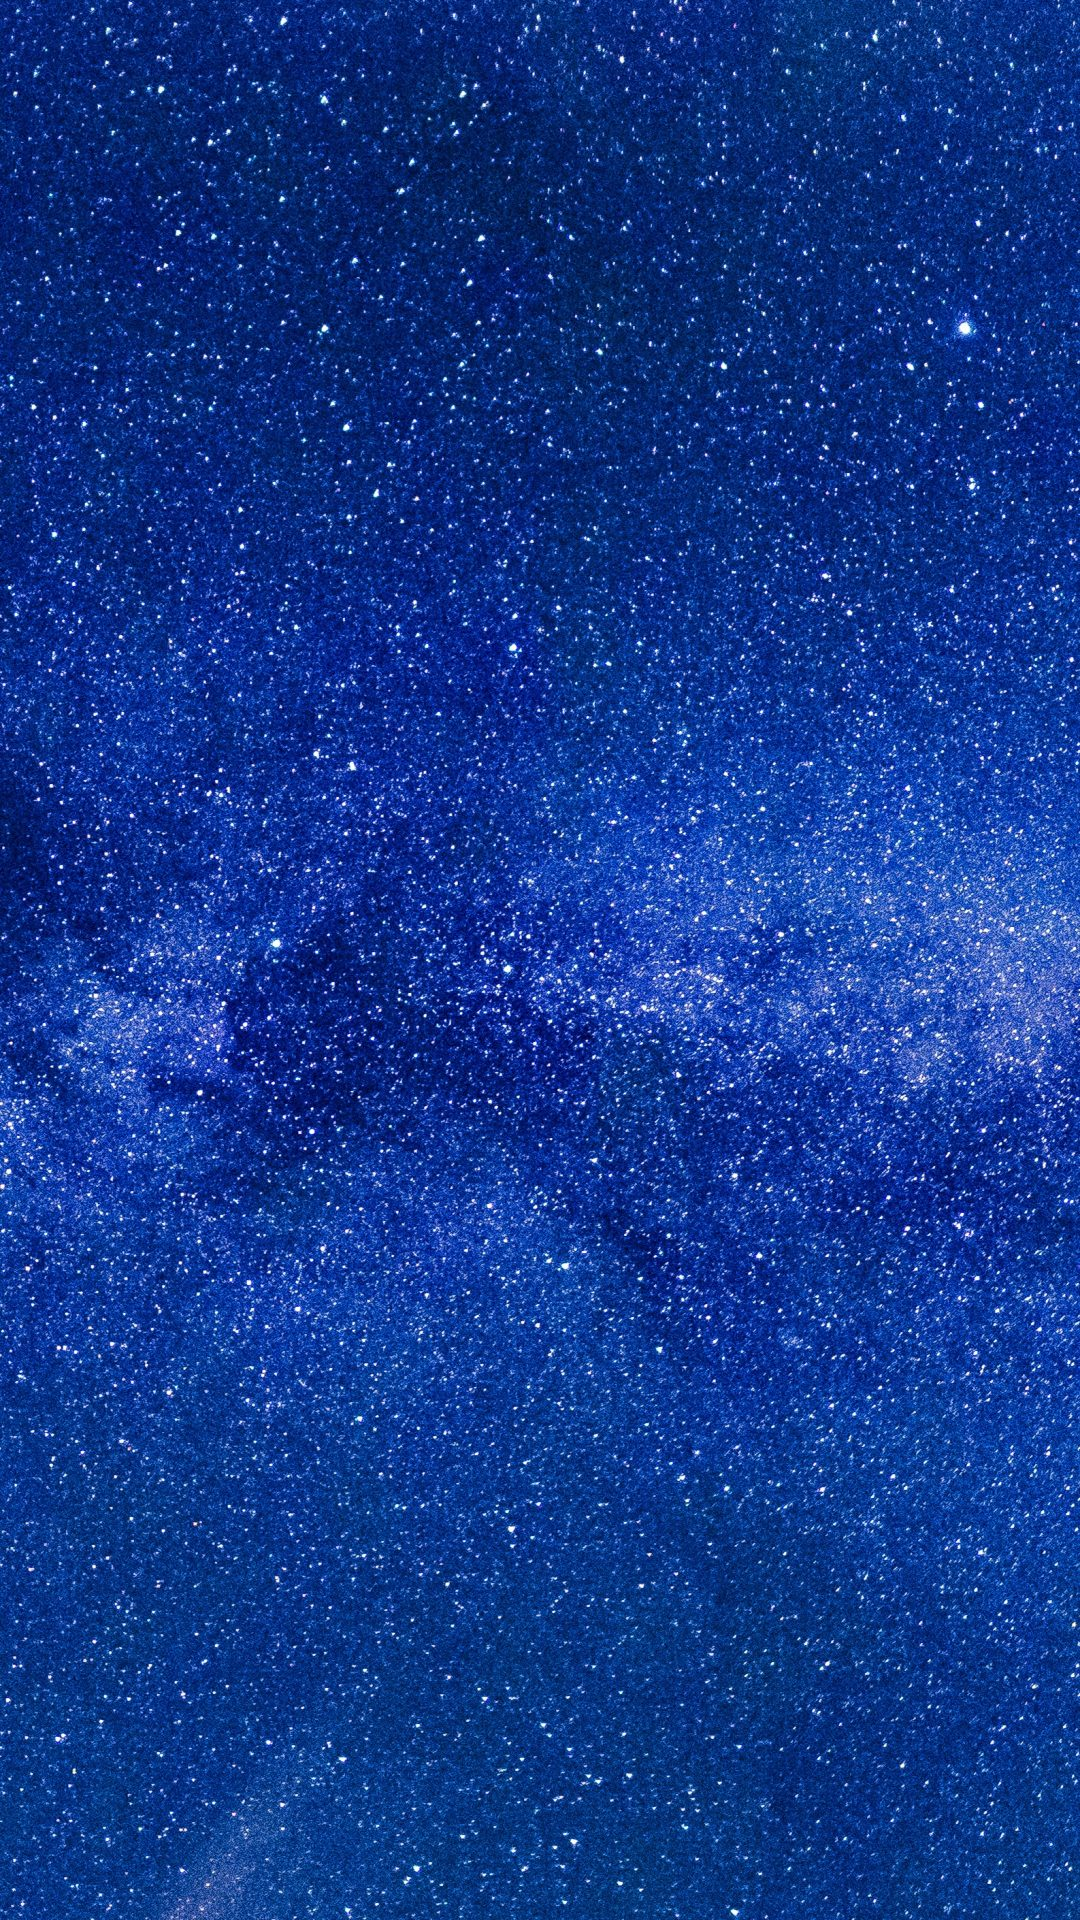 Ios 11 Hd Wallpaper Light Blue Starry Sky 4k Uhd Wallpaper Wallpapers Gg